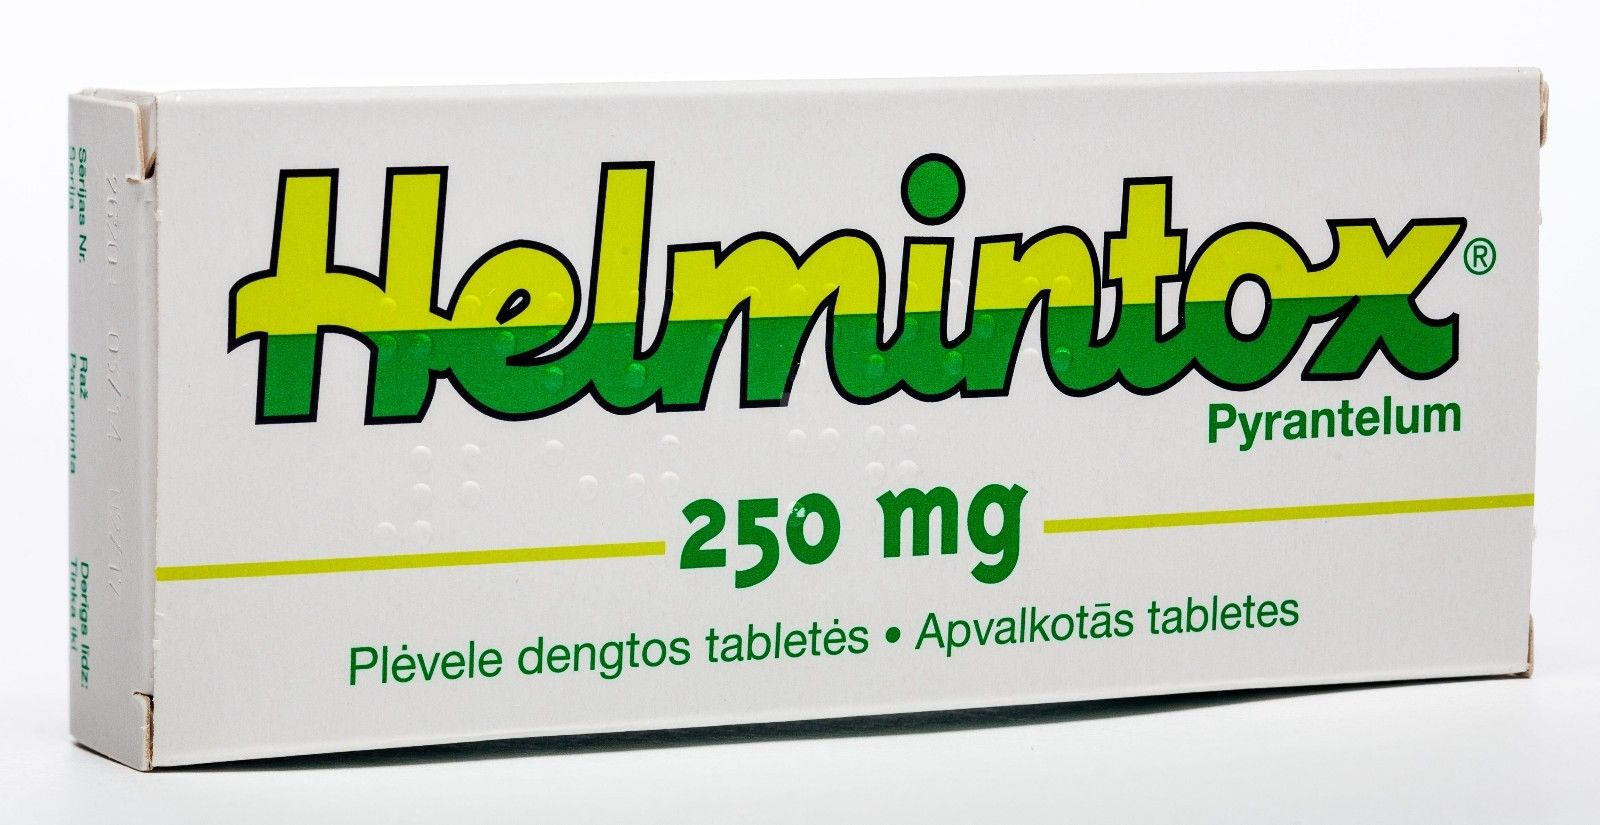 uses of helmintox)